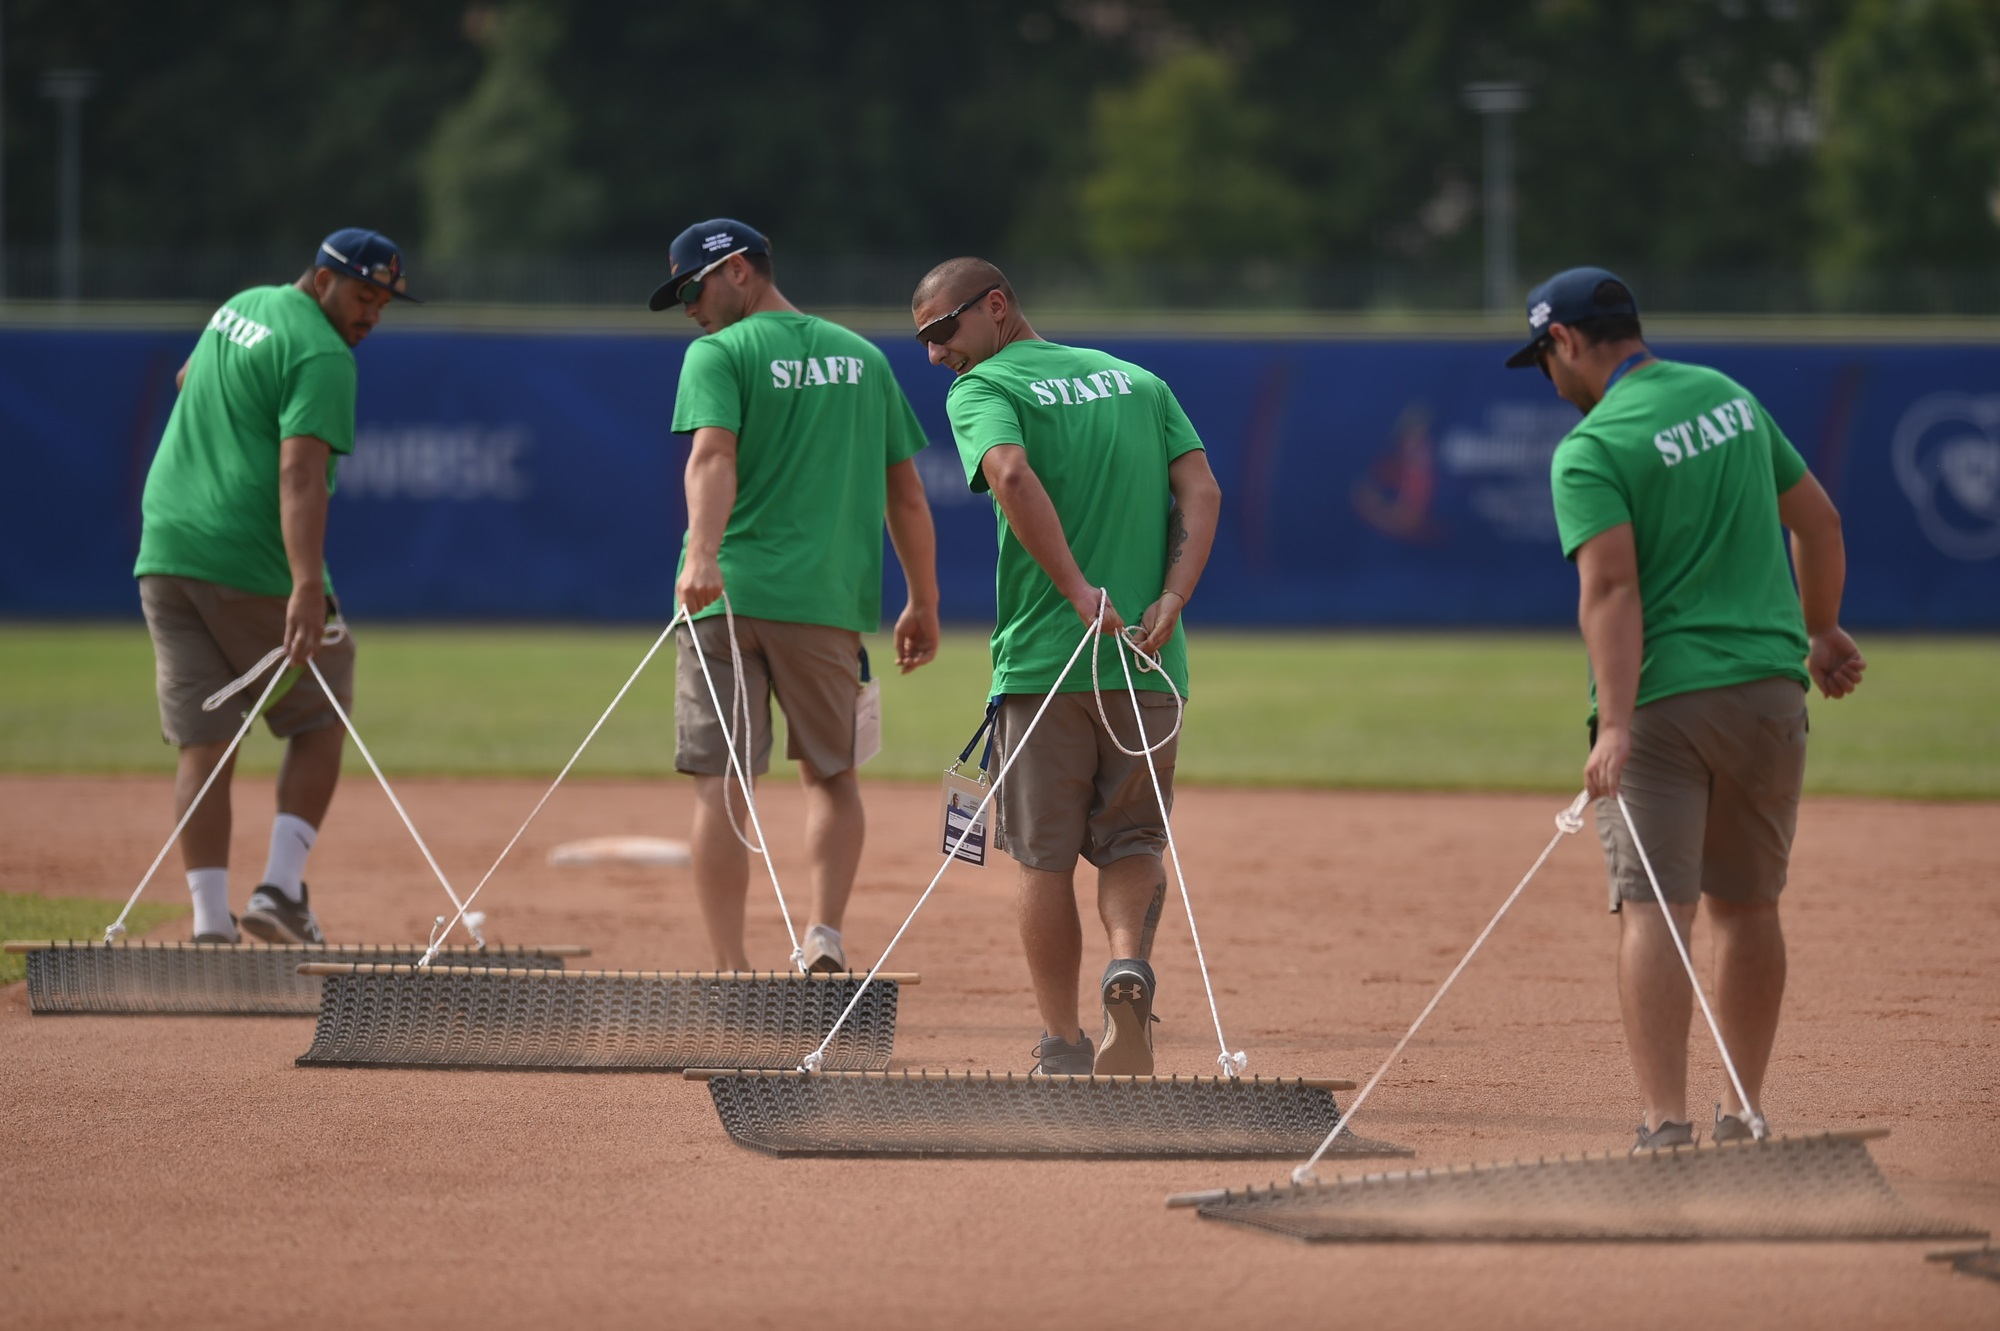 The field maintenance crew at work